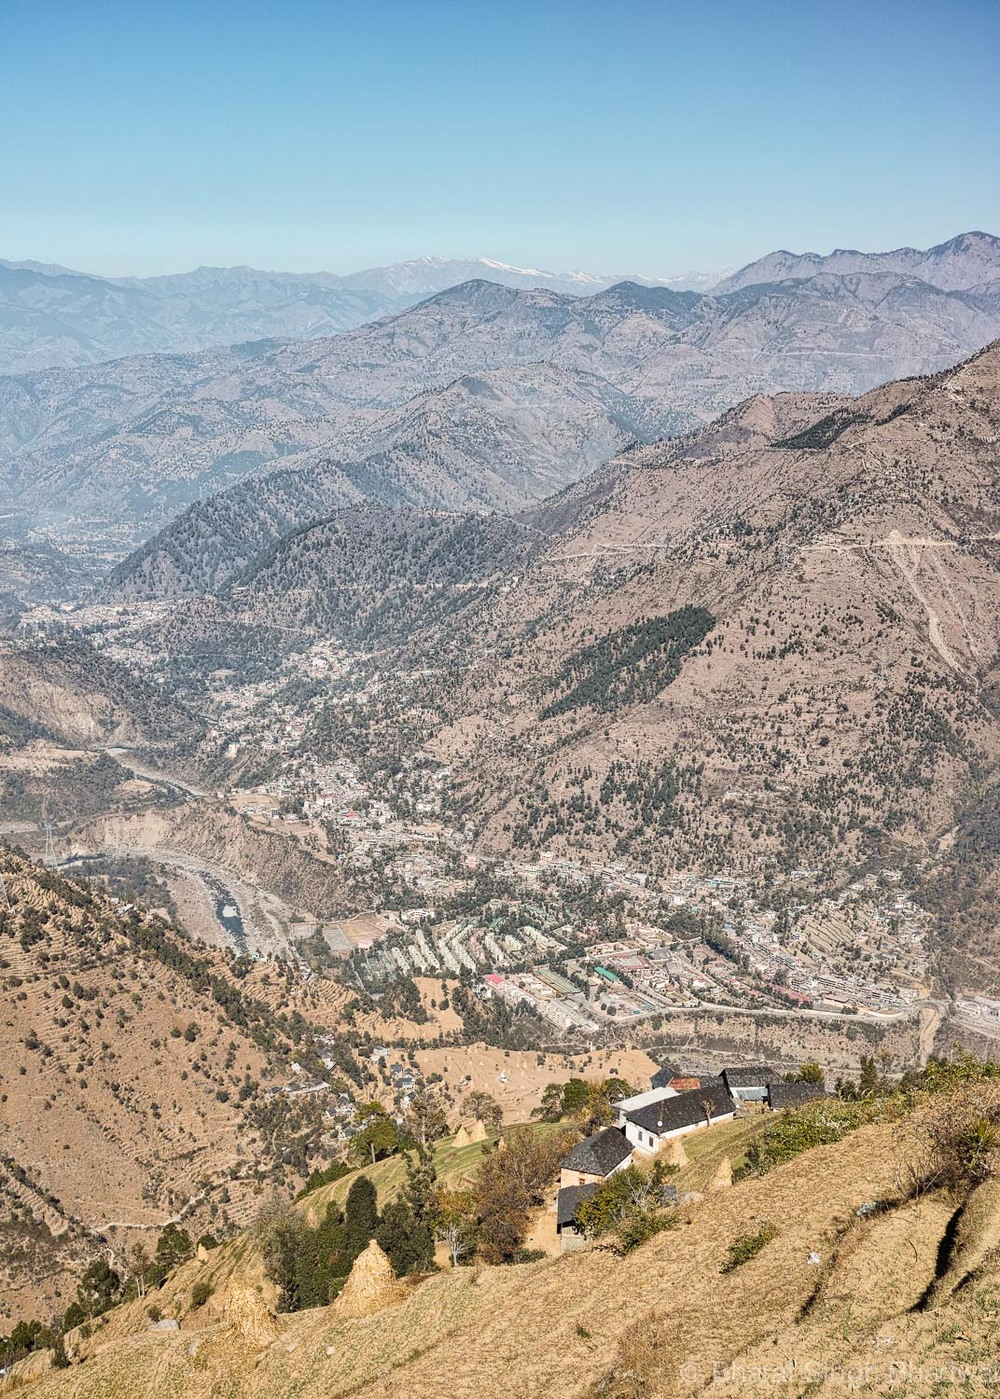 Chamera Project and Chamba town as viewed from Jatkari Village